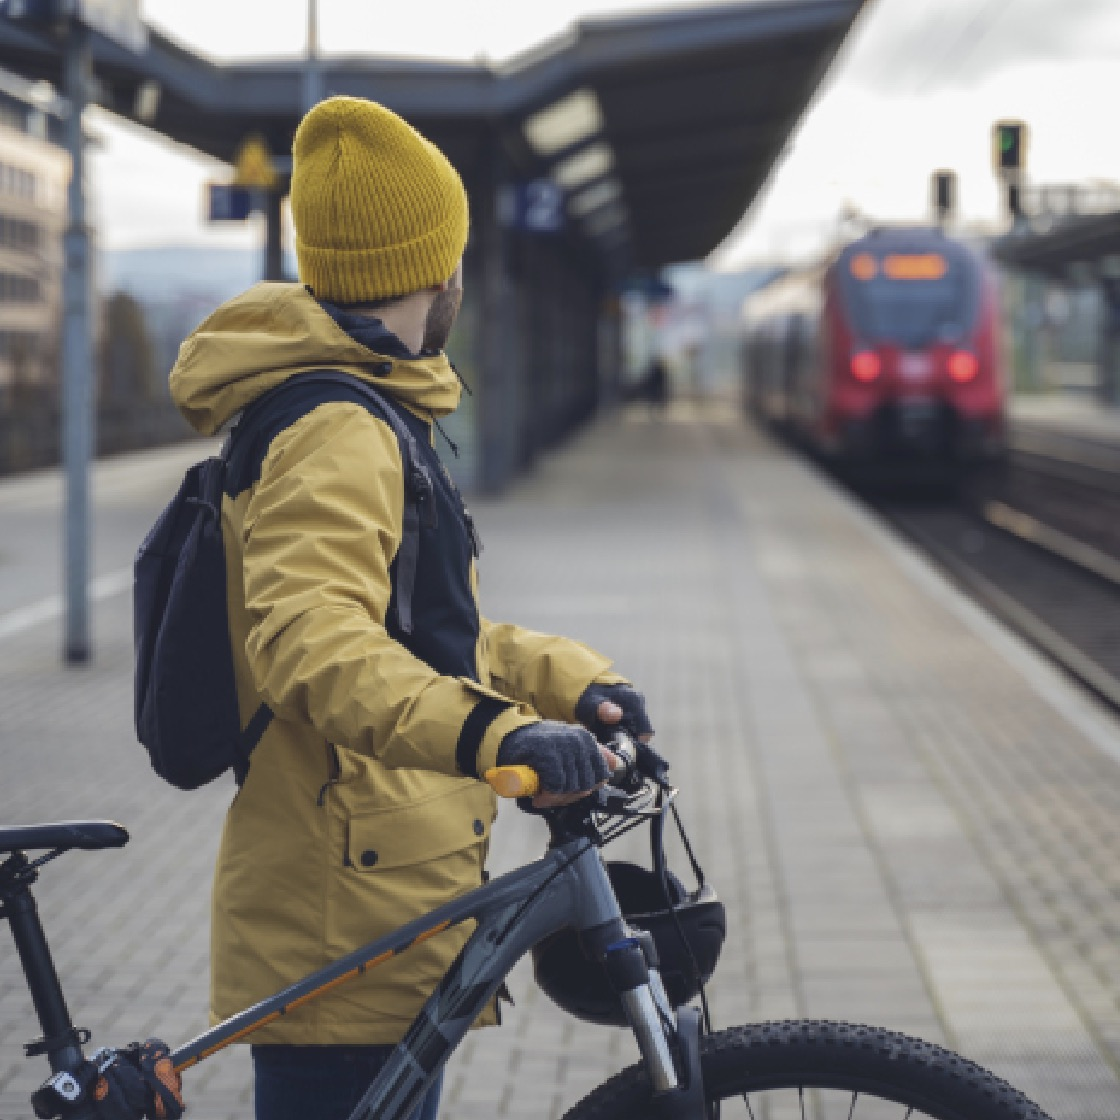 A white man in a tin jacket and hat stands with a bike on a light rail platform